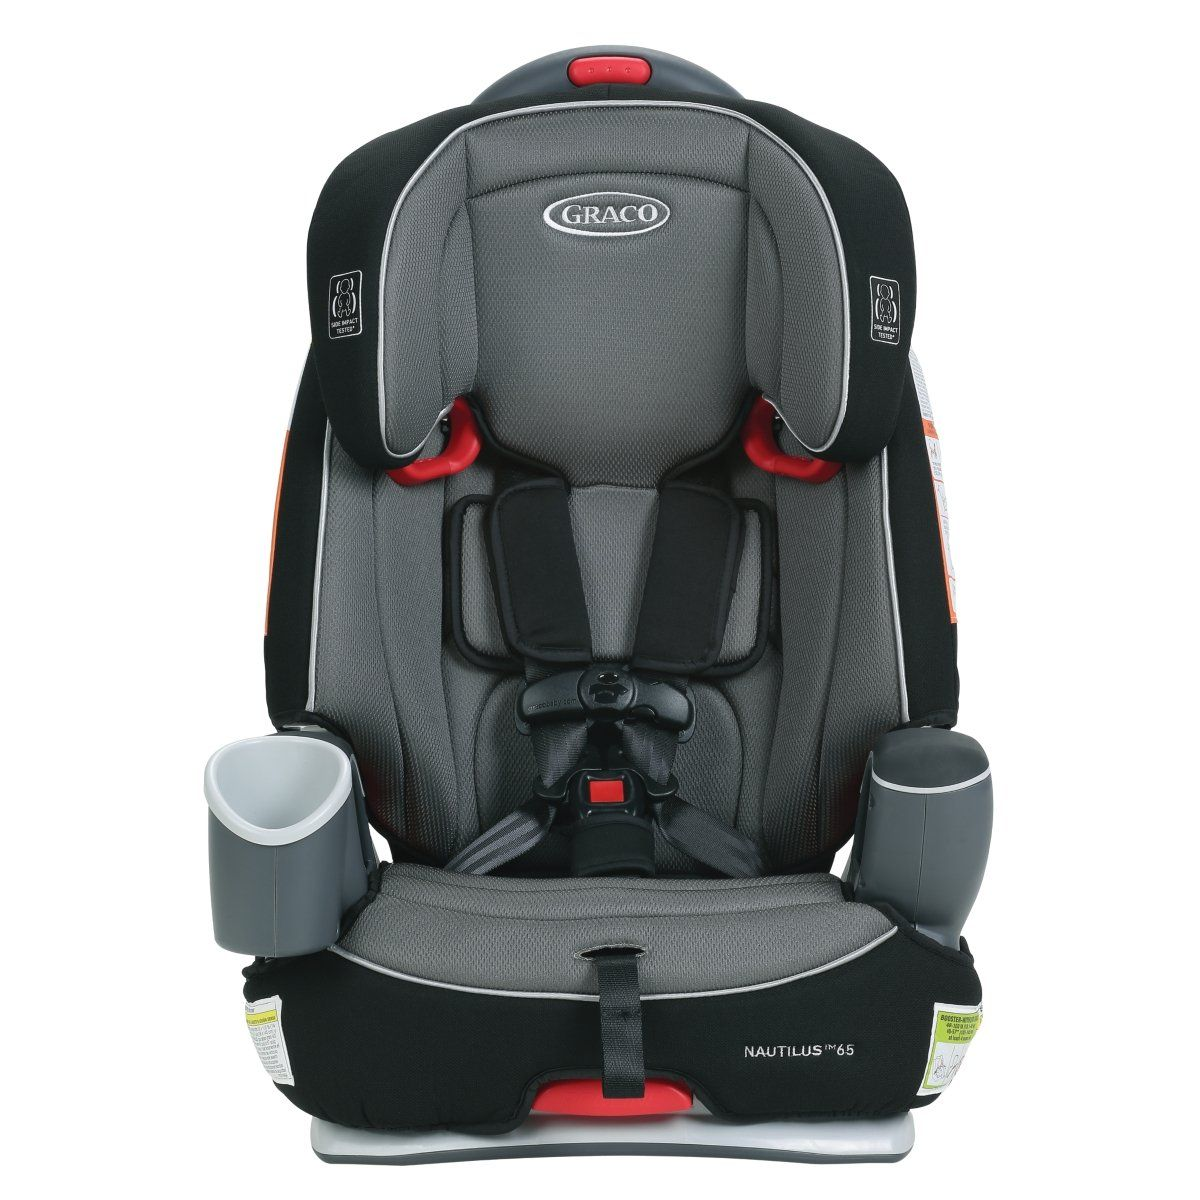 Nautilus 65 3in1 Harness Booster Bravo Baby car seats